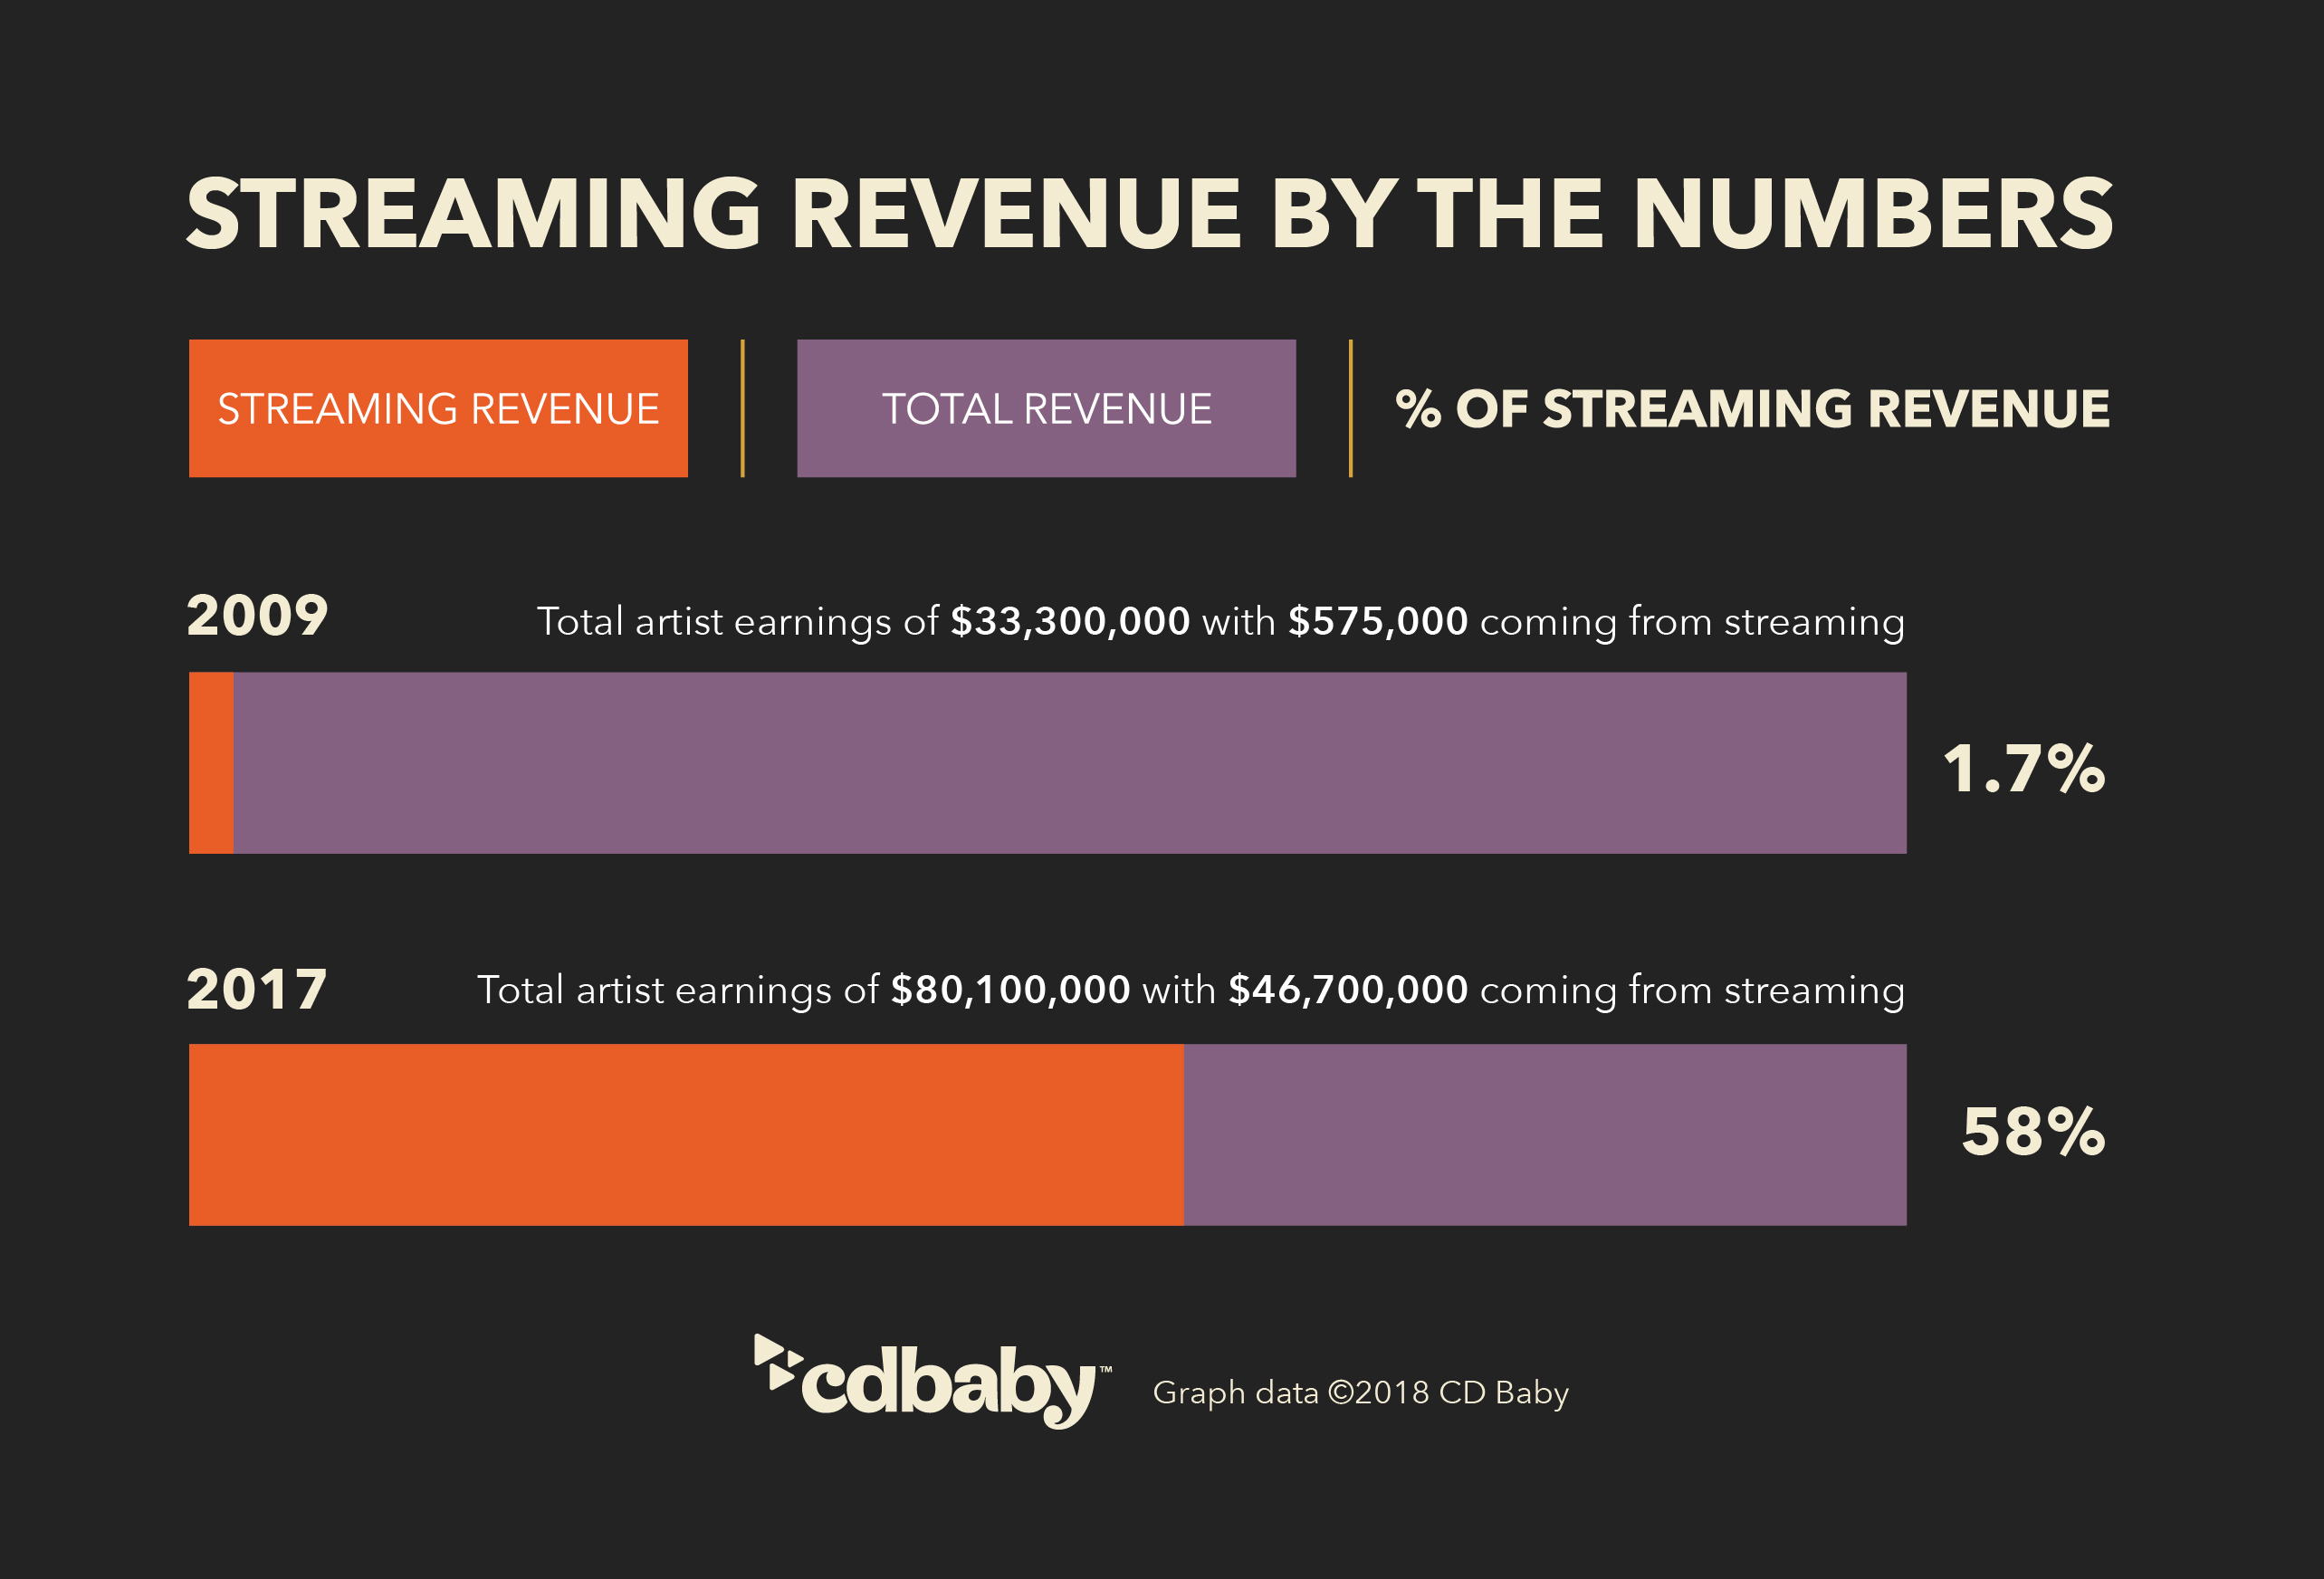 Streaming revenue as a percentage of total revenue payout